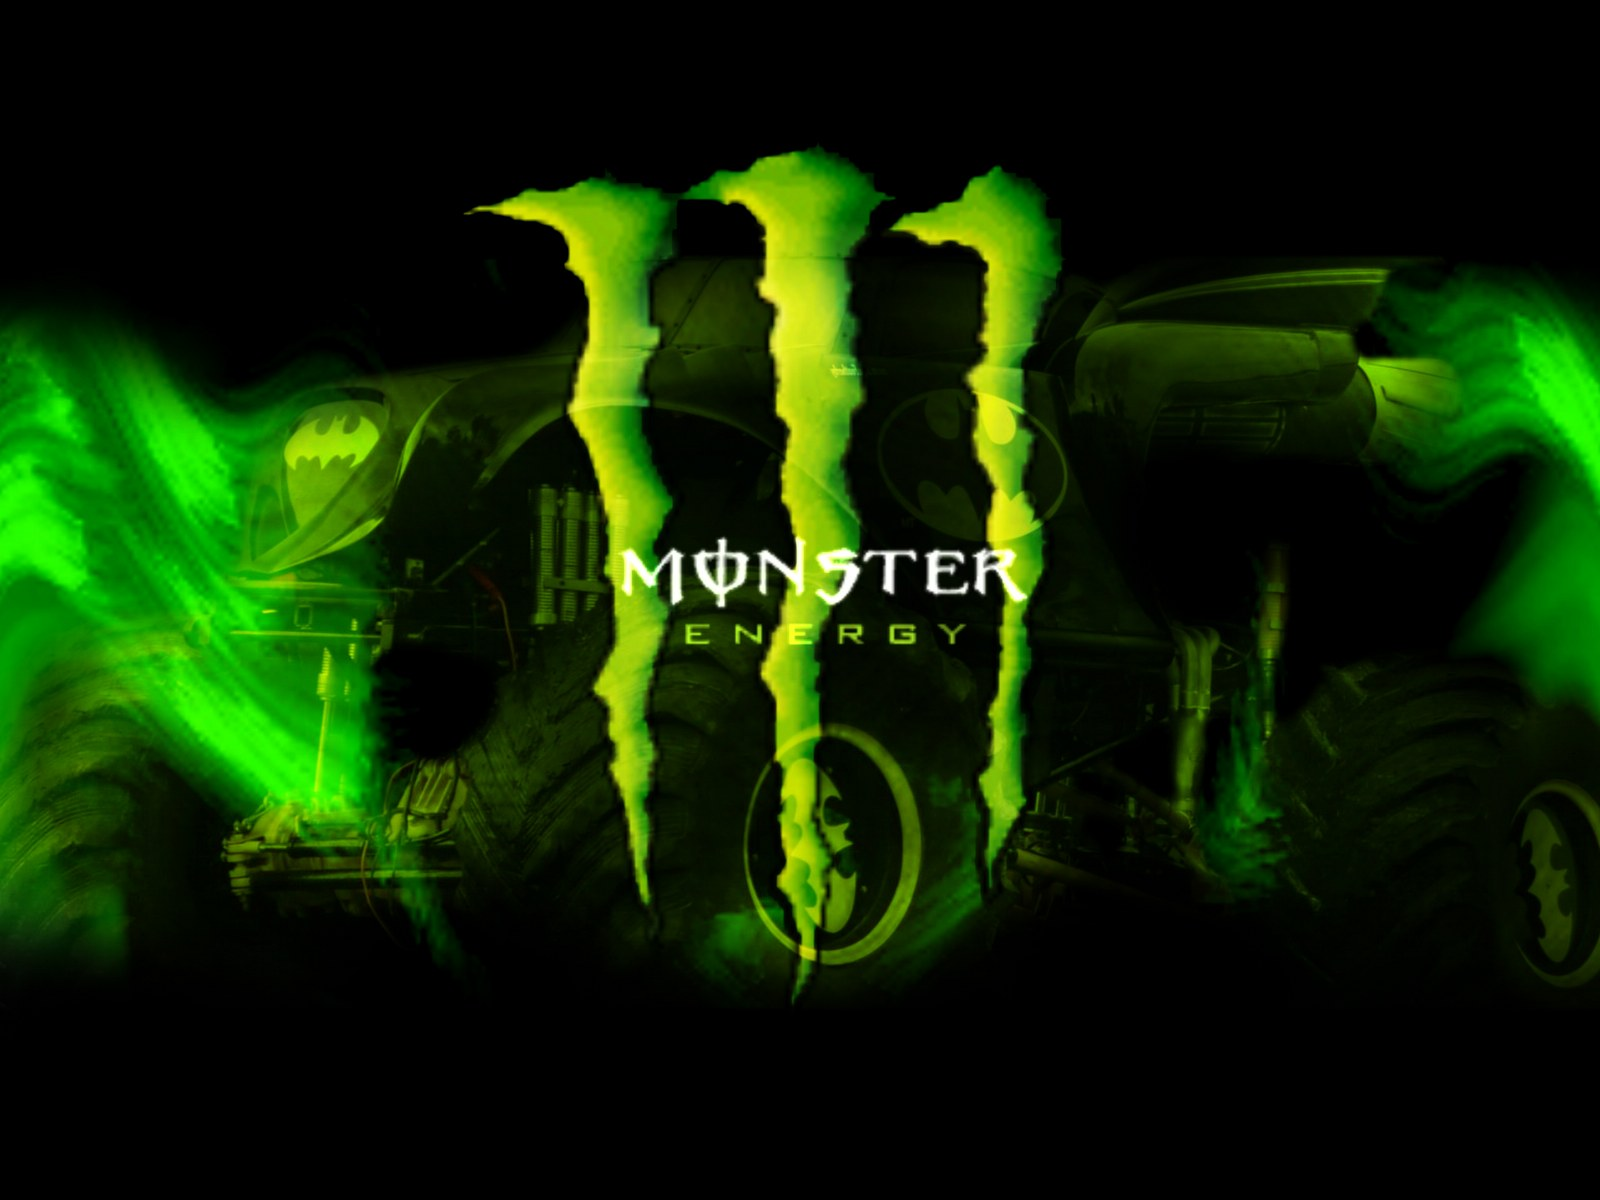 Monster Energy 2013 Wallpaper | Wallpapers55.com   Best Wallpapers For .